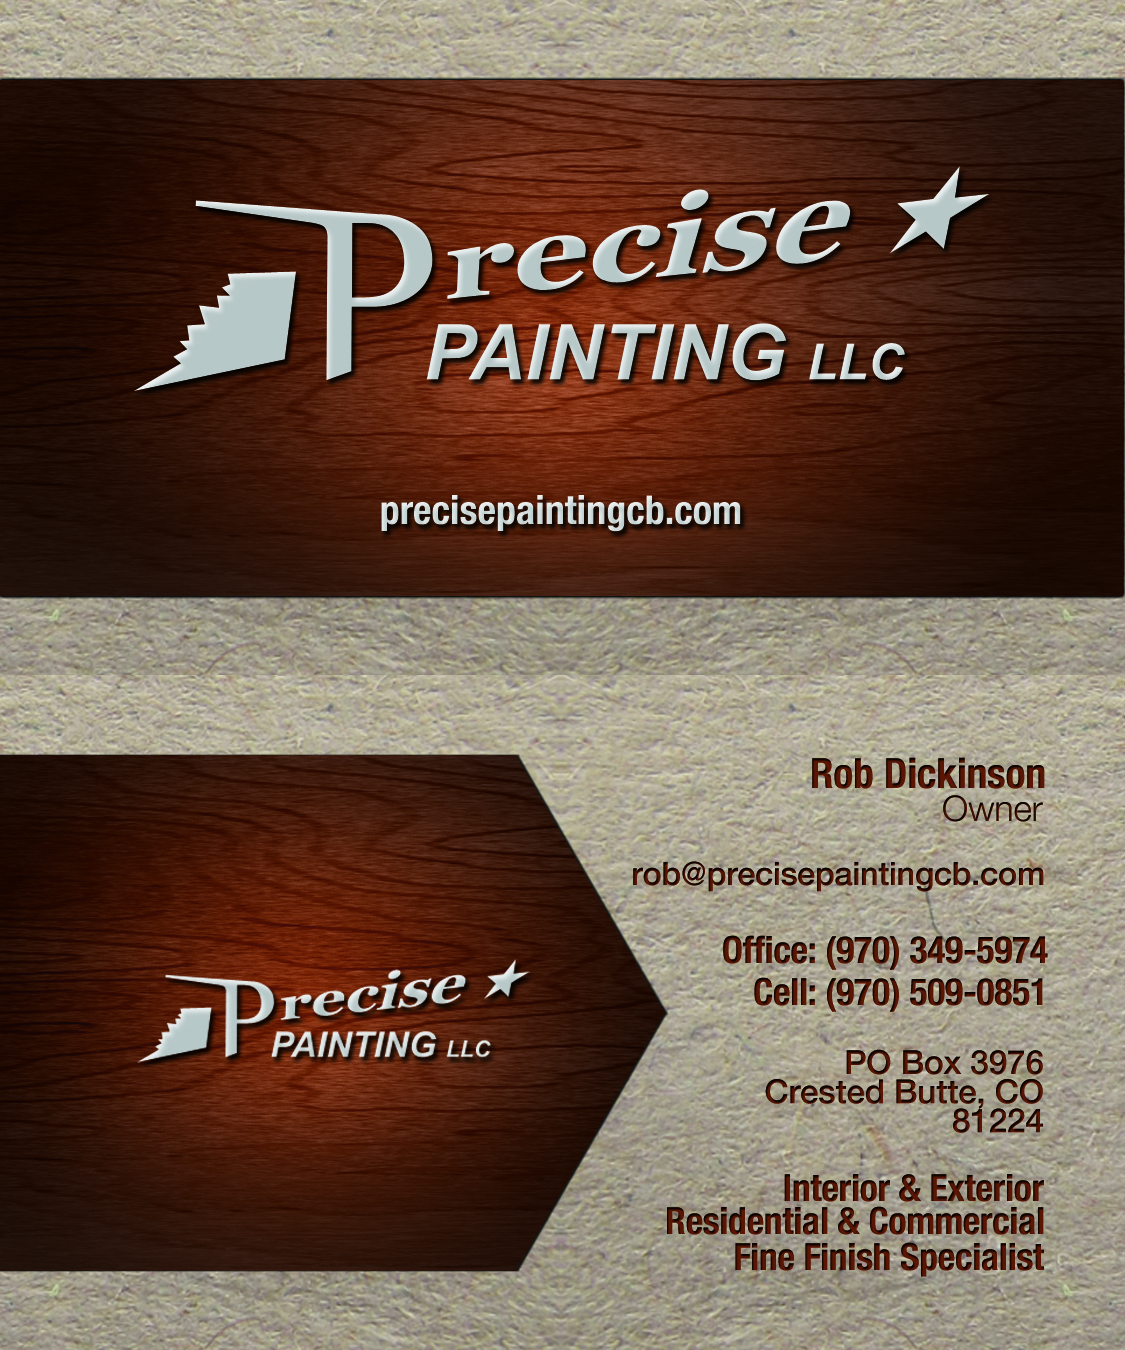 Precise painting business card tmaindesigns project description these new business cards colourmoves